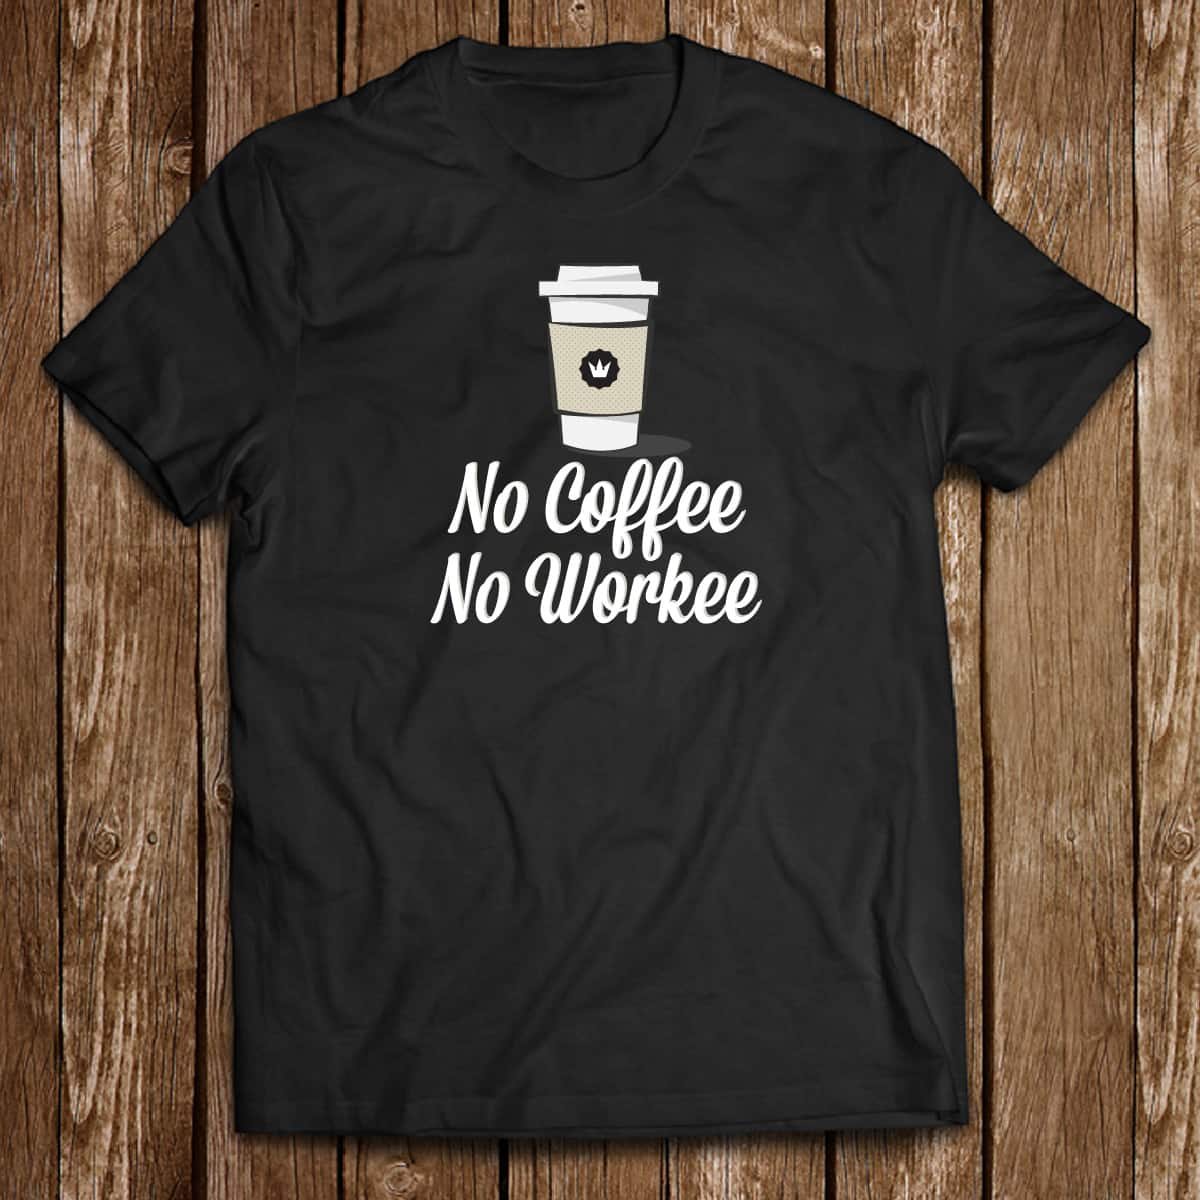 No Coffee No Workee by curtis.cunningham2 on Threadless